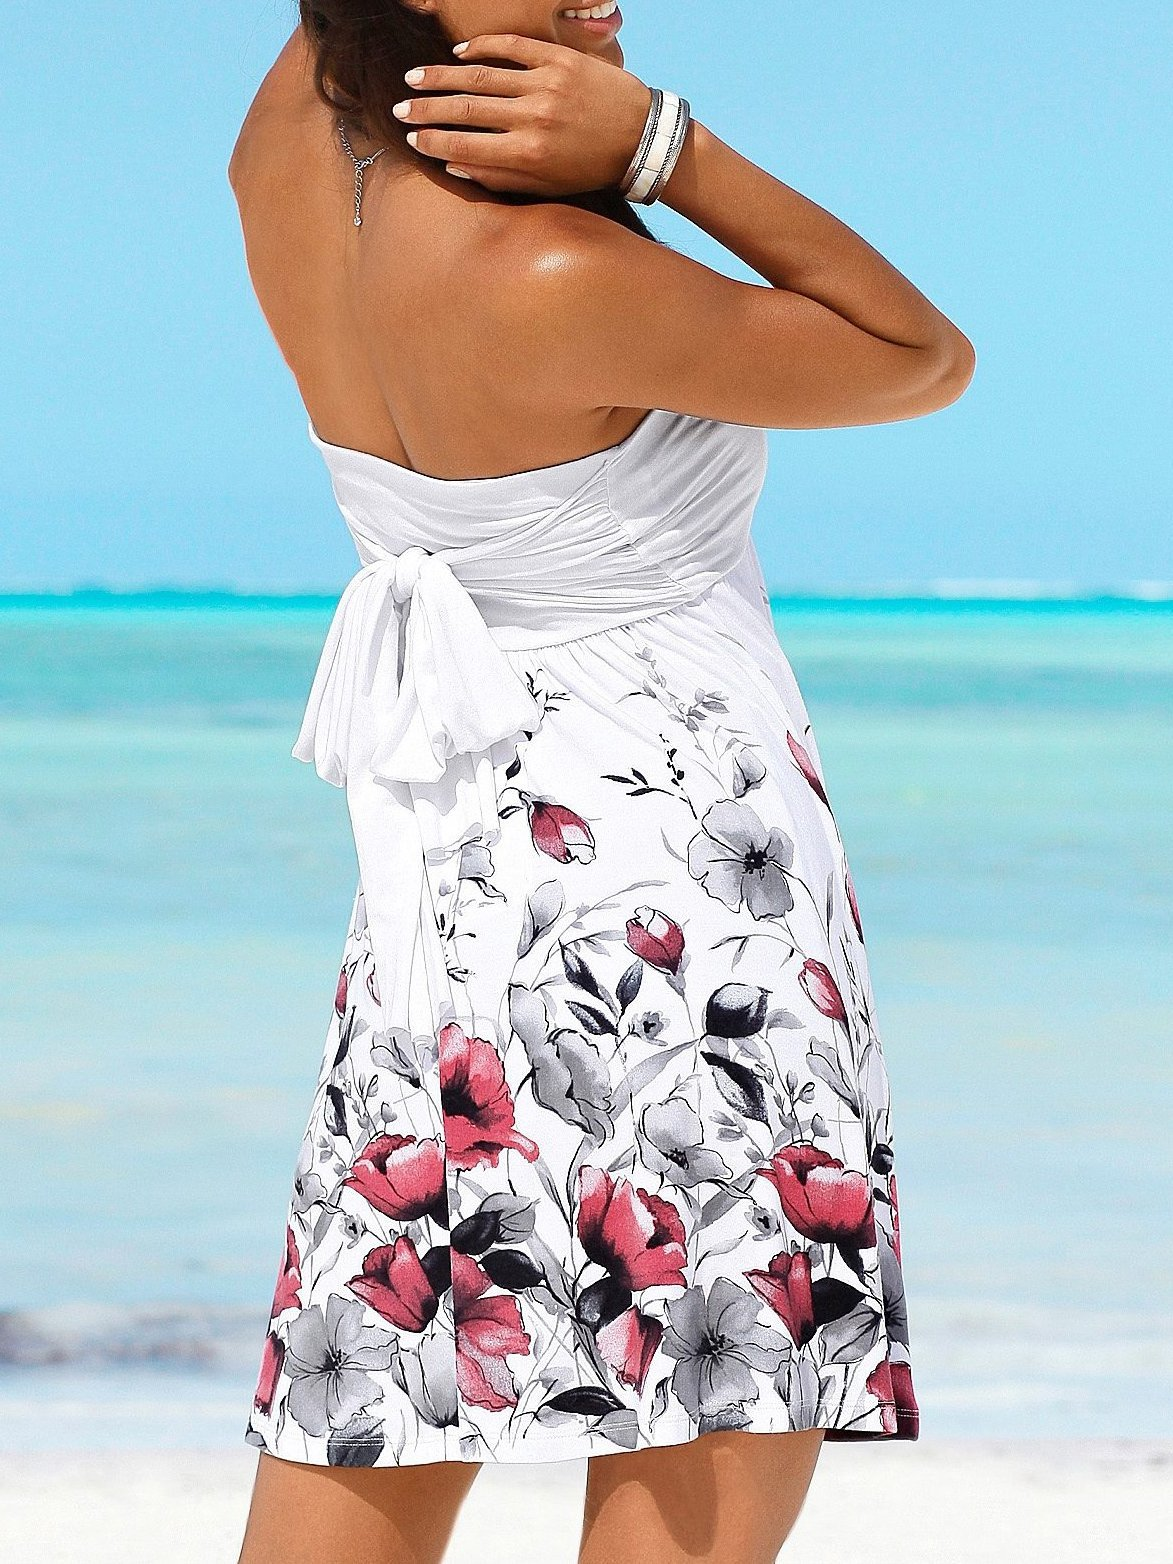 Floral Print Halter Beach Dress